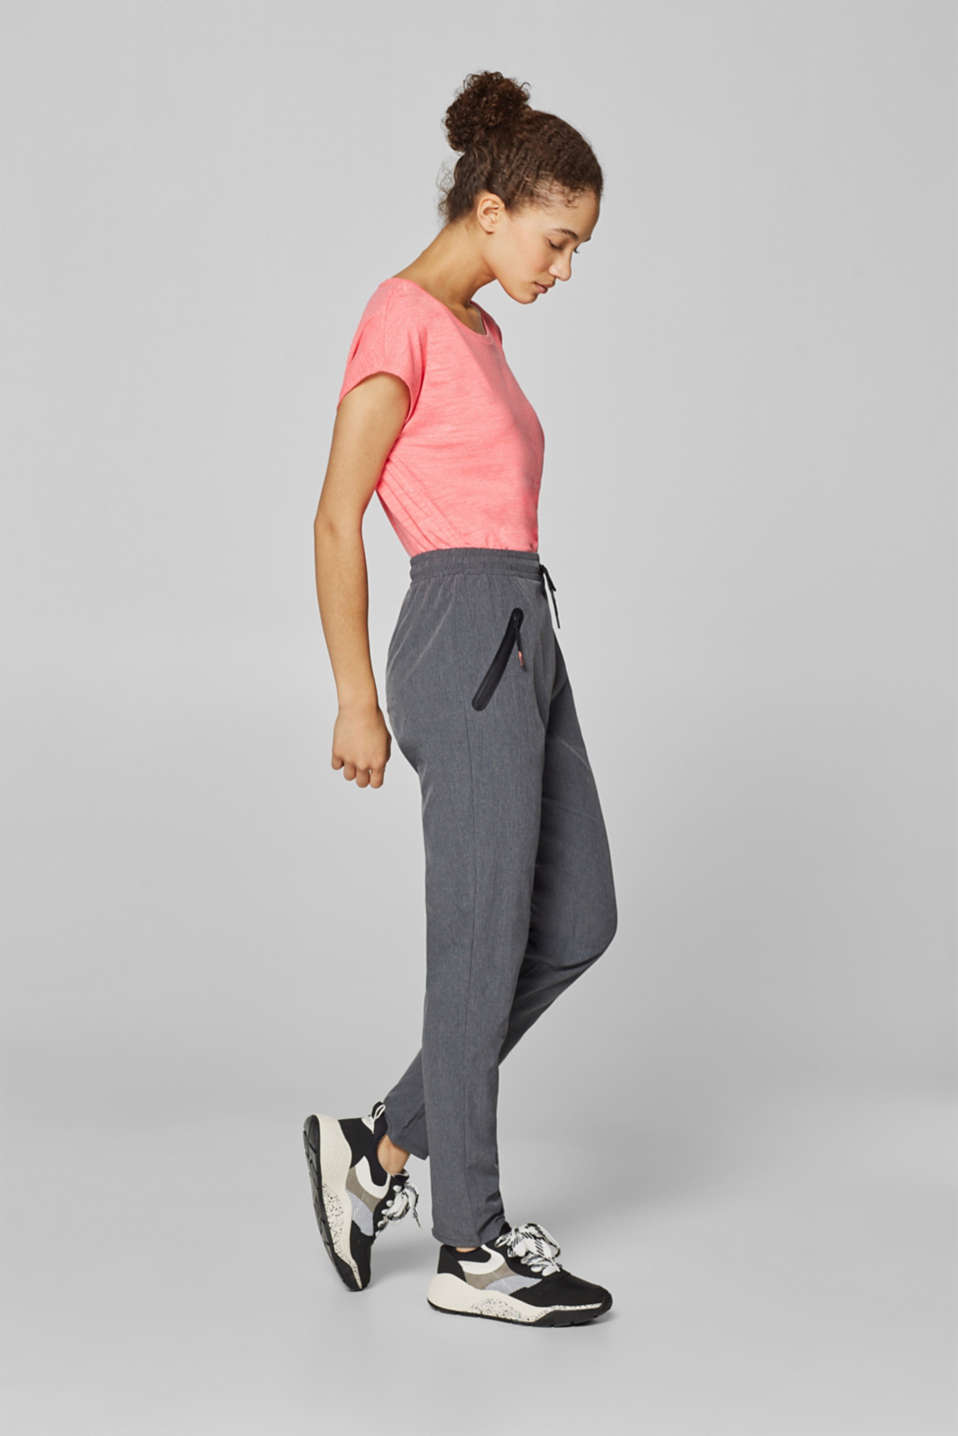 Esprit - Woven trousers with flat zip pockets, E-DRY